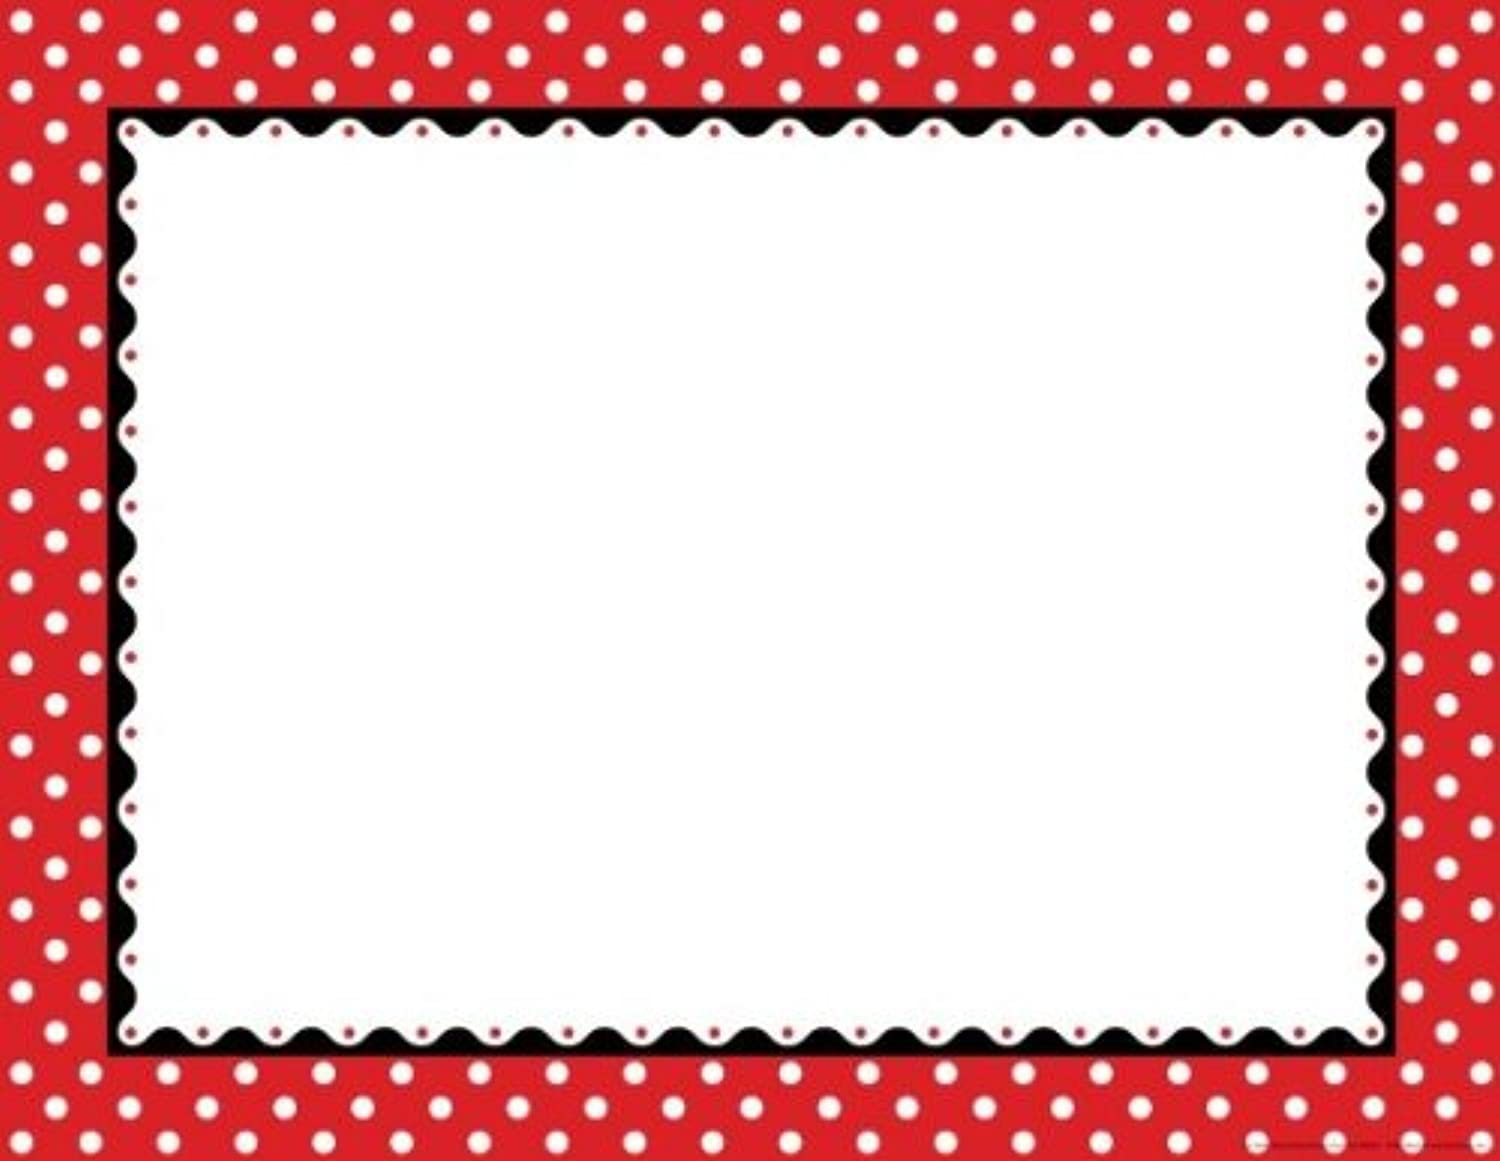 Just Dotty Red & White Border Chart